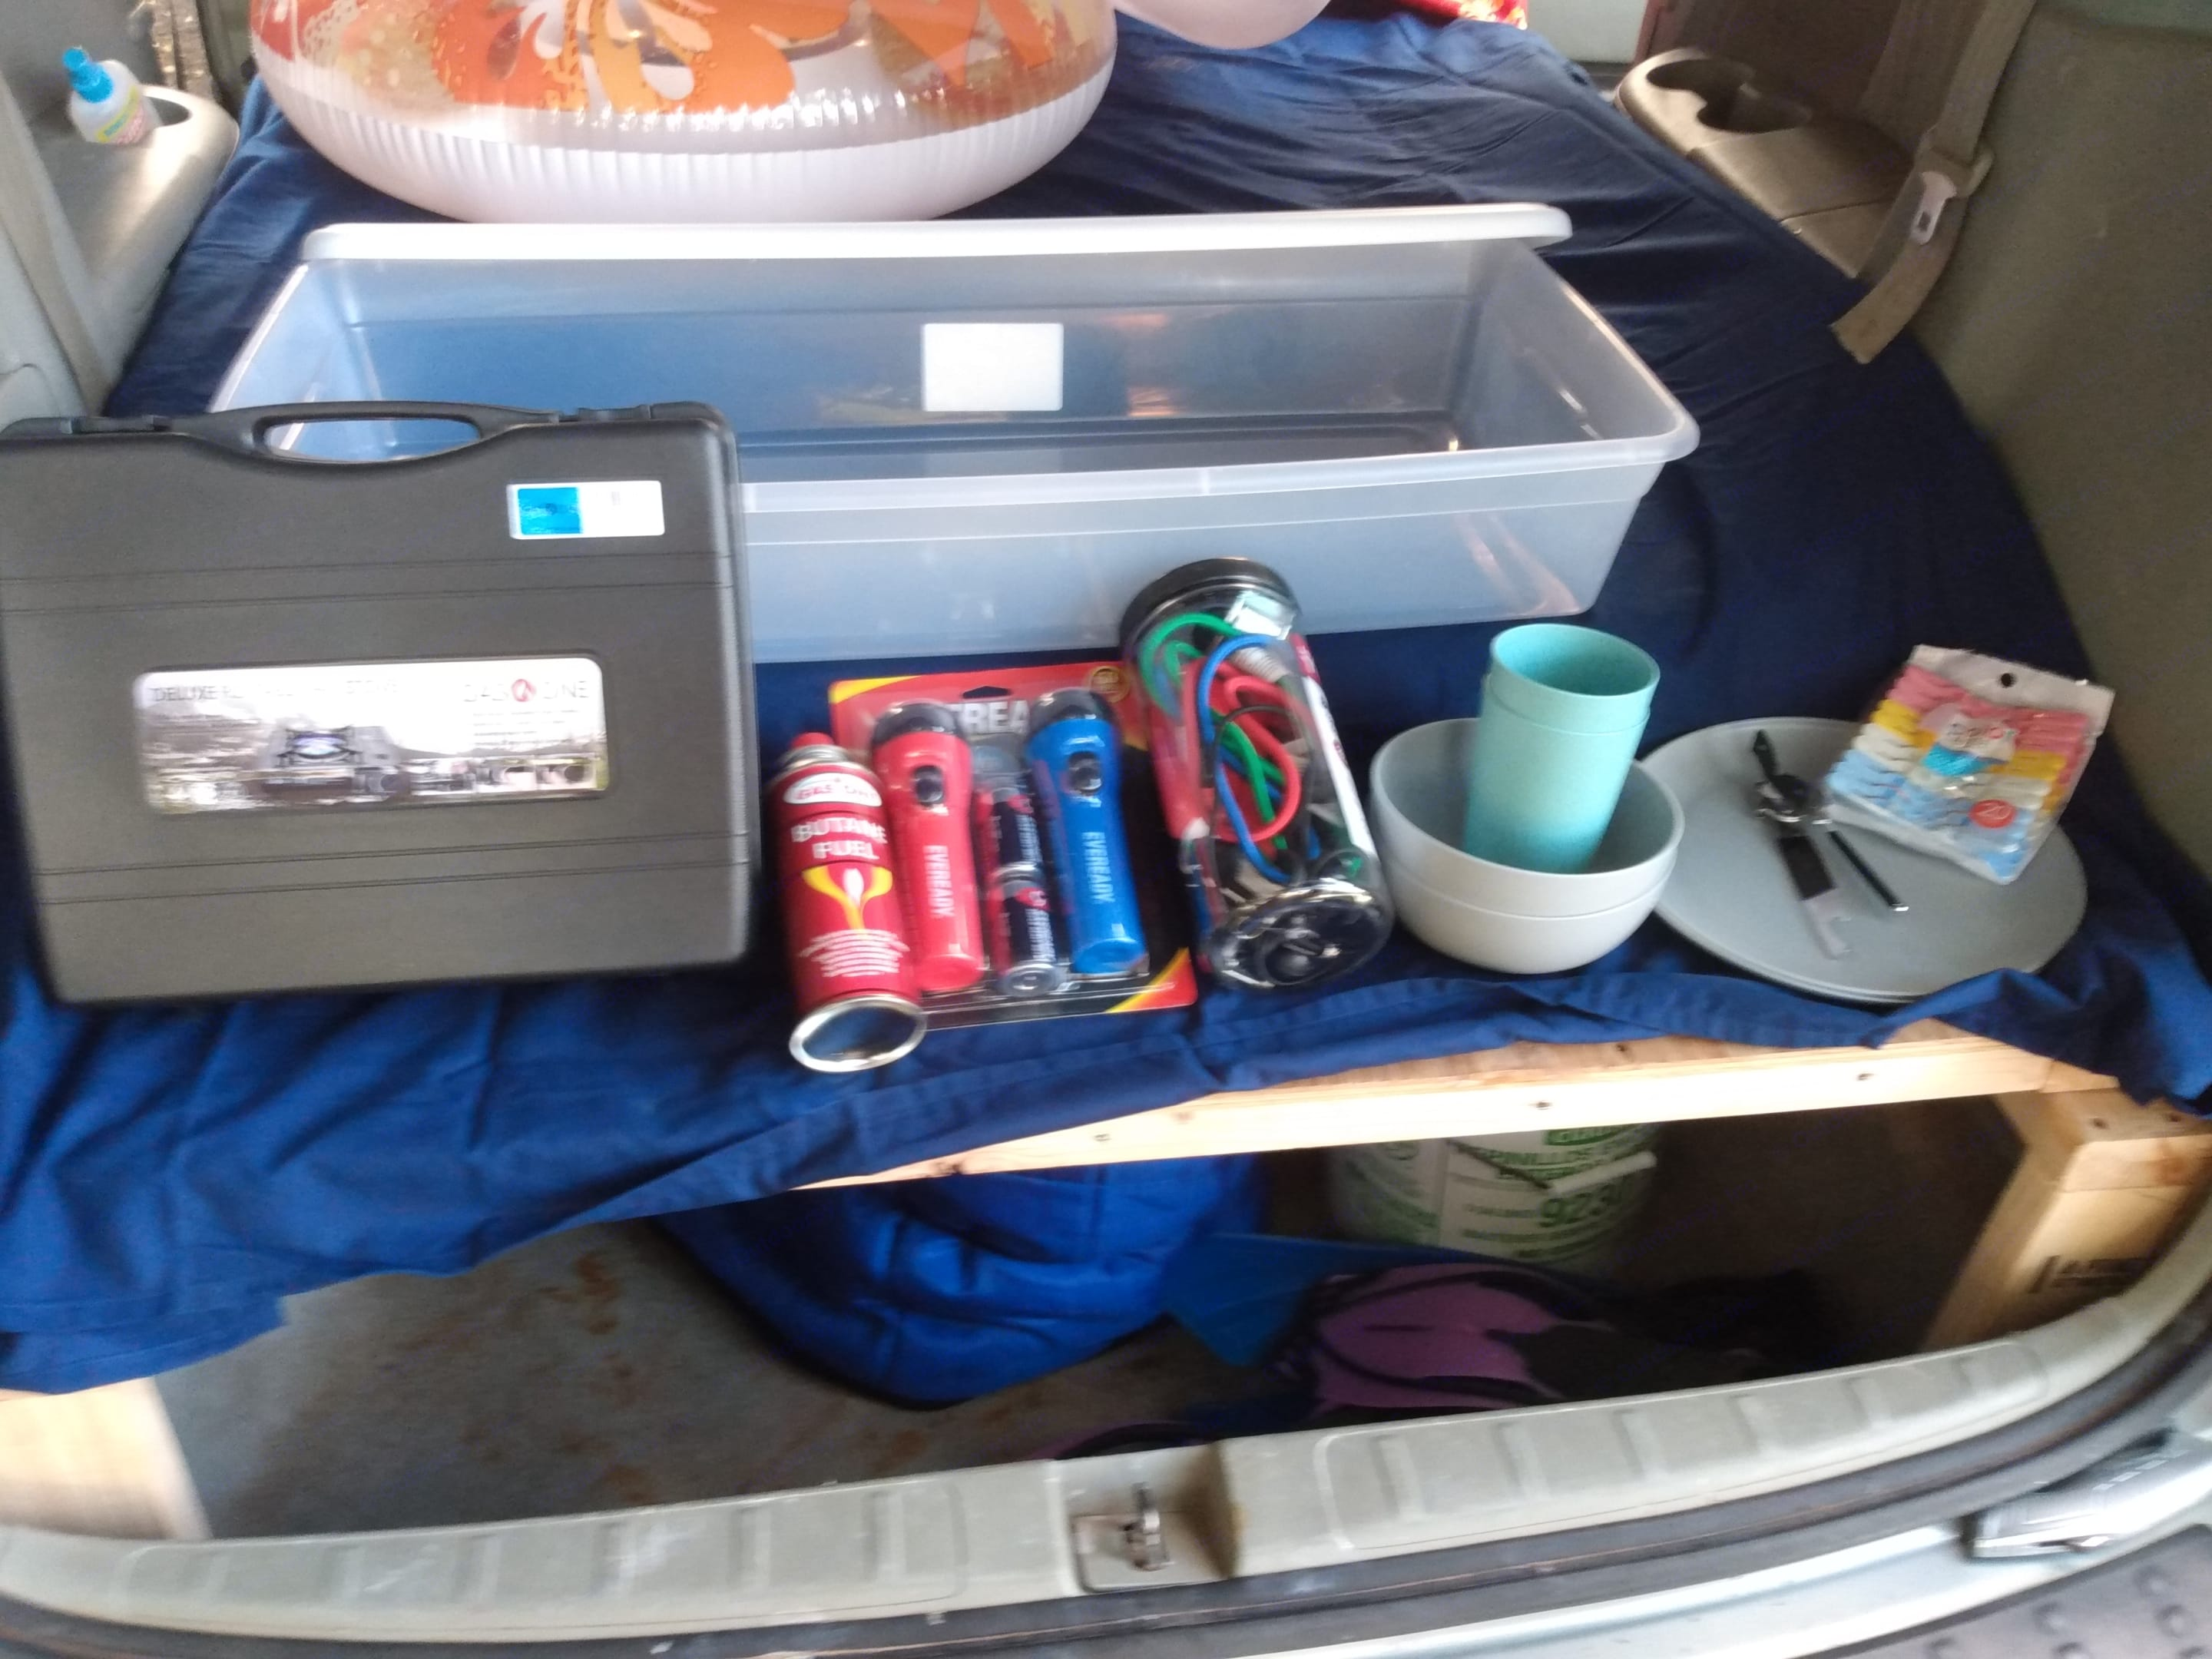 Flat storage box under the bed platform includes new propane burner, mess kit and miscellaneous items. Honda Odyssey 2005